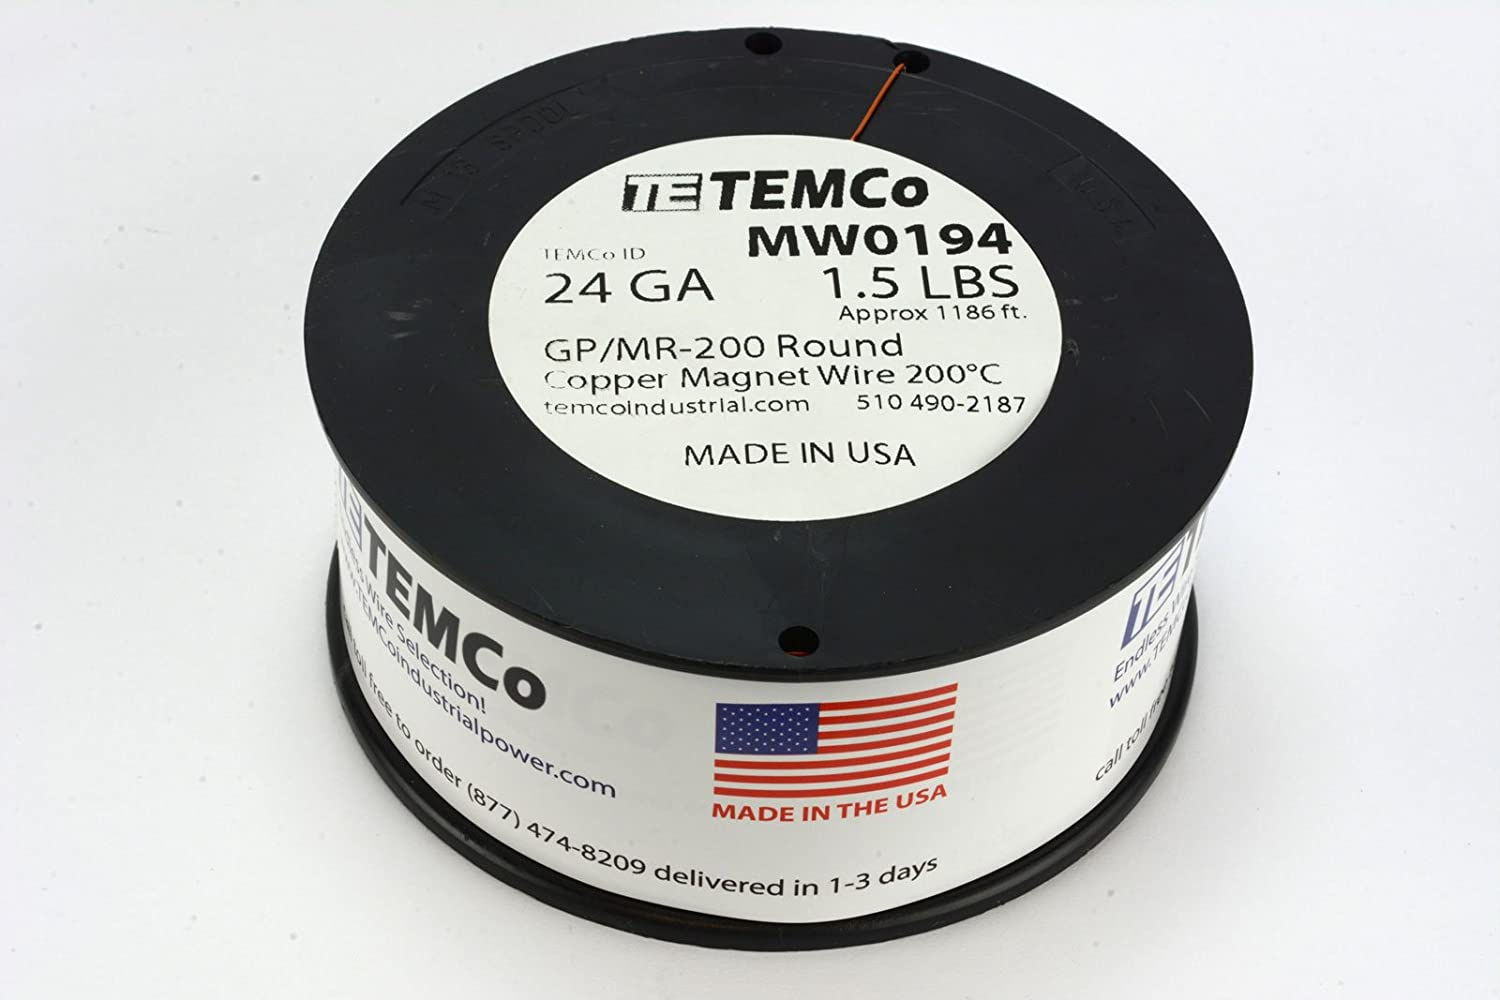 Temco 24 Awg Copper Magnet Wire - WIRE Center •